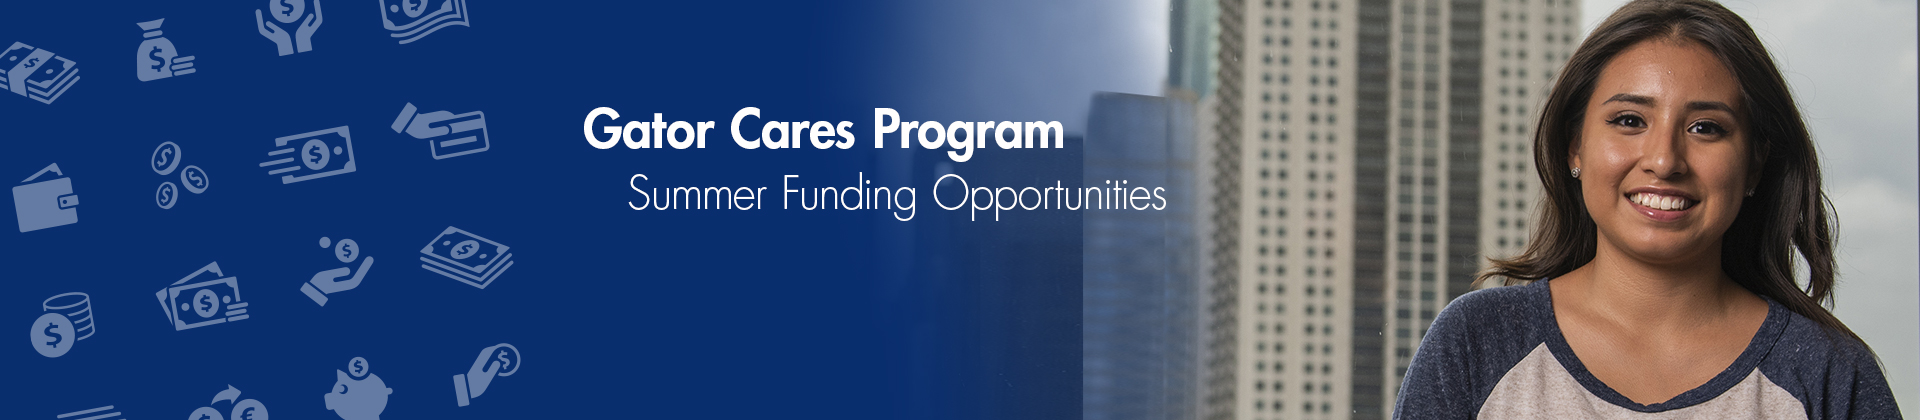 Gator Cares Summer Funding Opportunities - UHD female student, Houston downtown background and money symbols